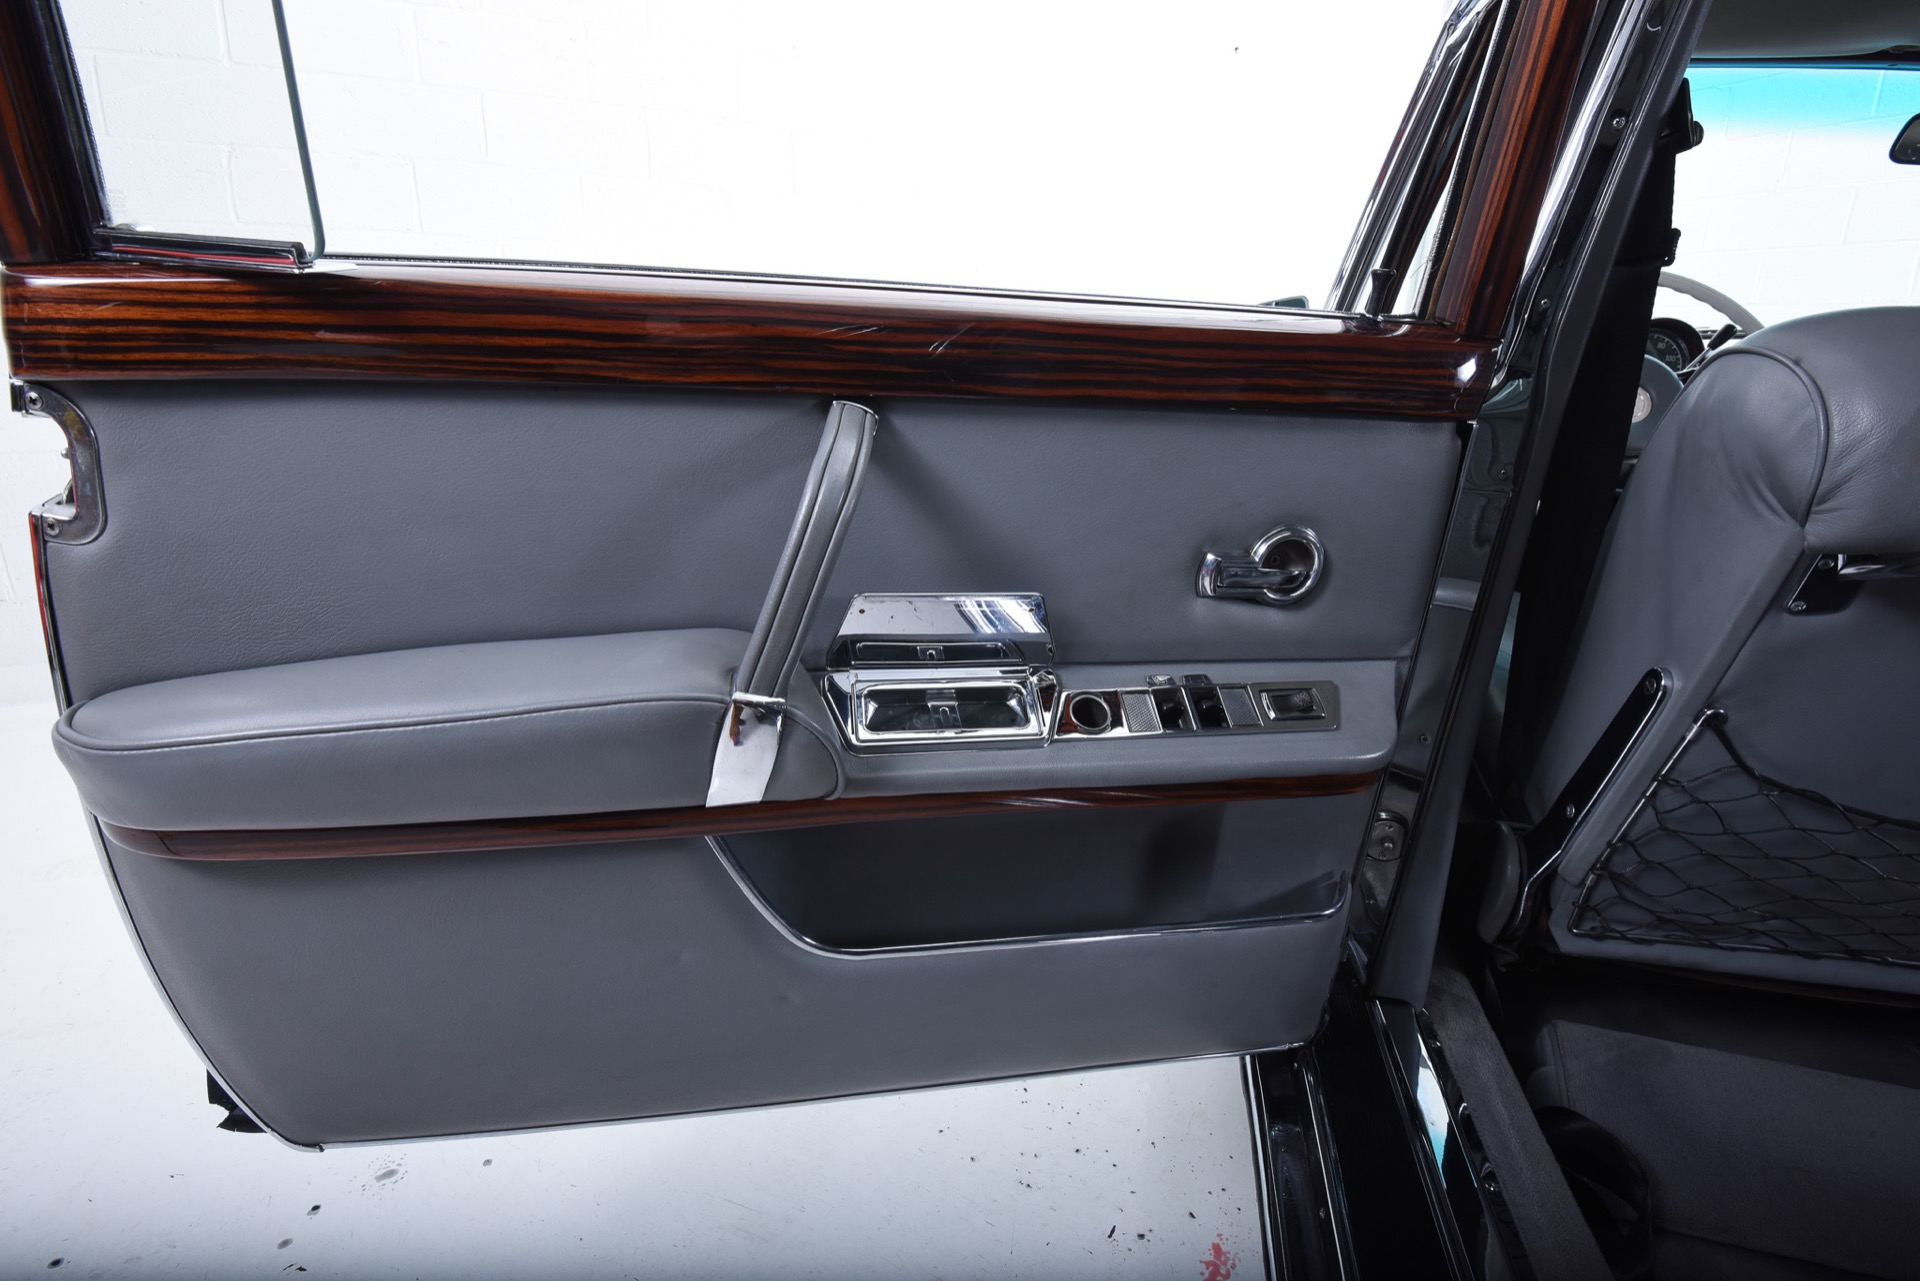 1965 Mercedes-Benz 600 4-Door Sedan